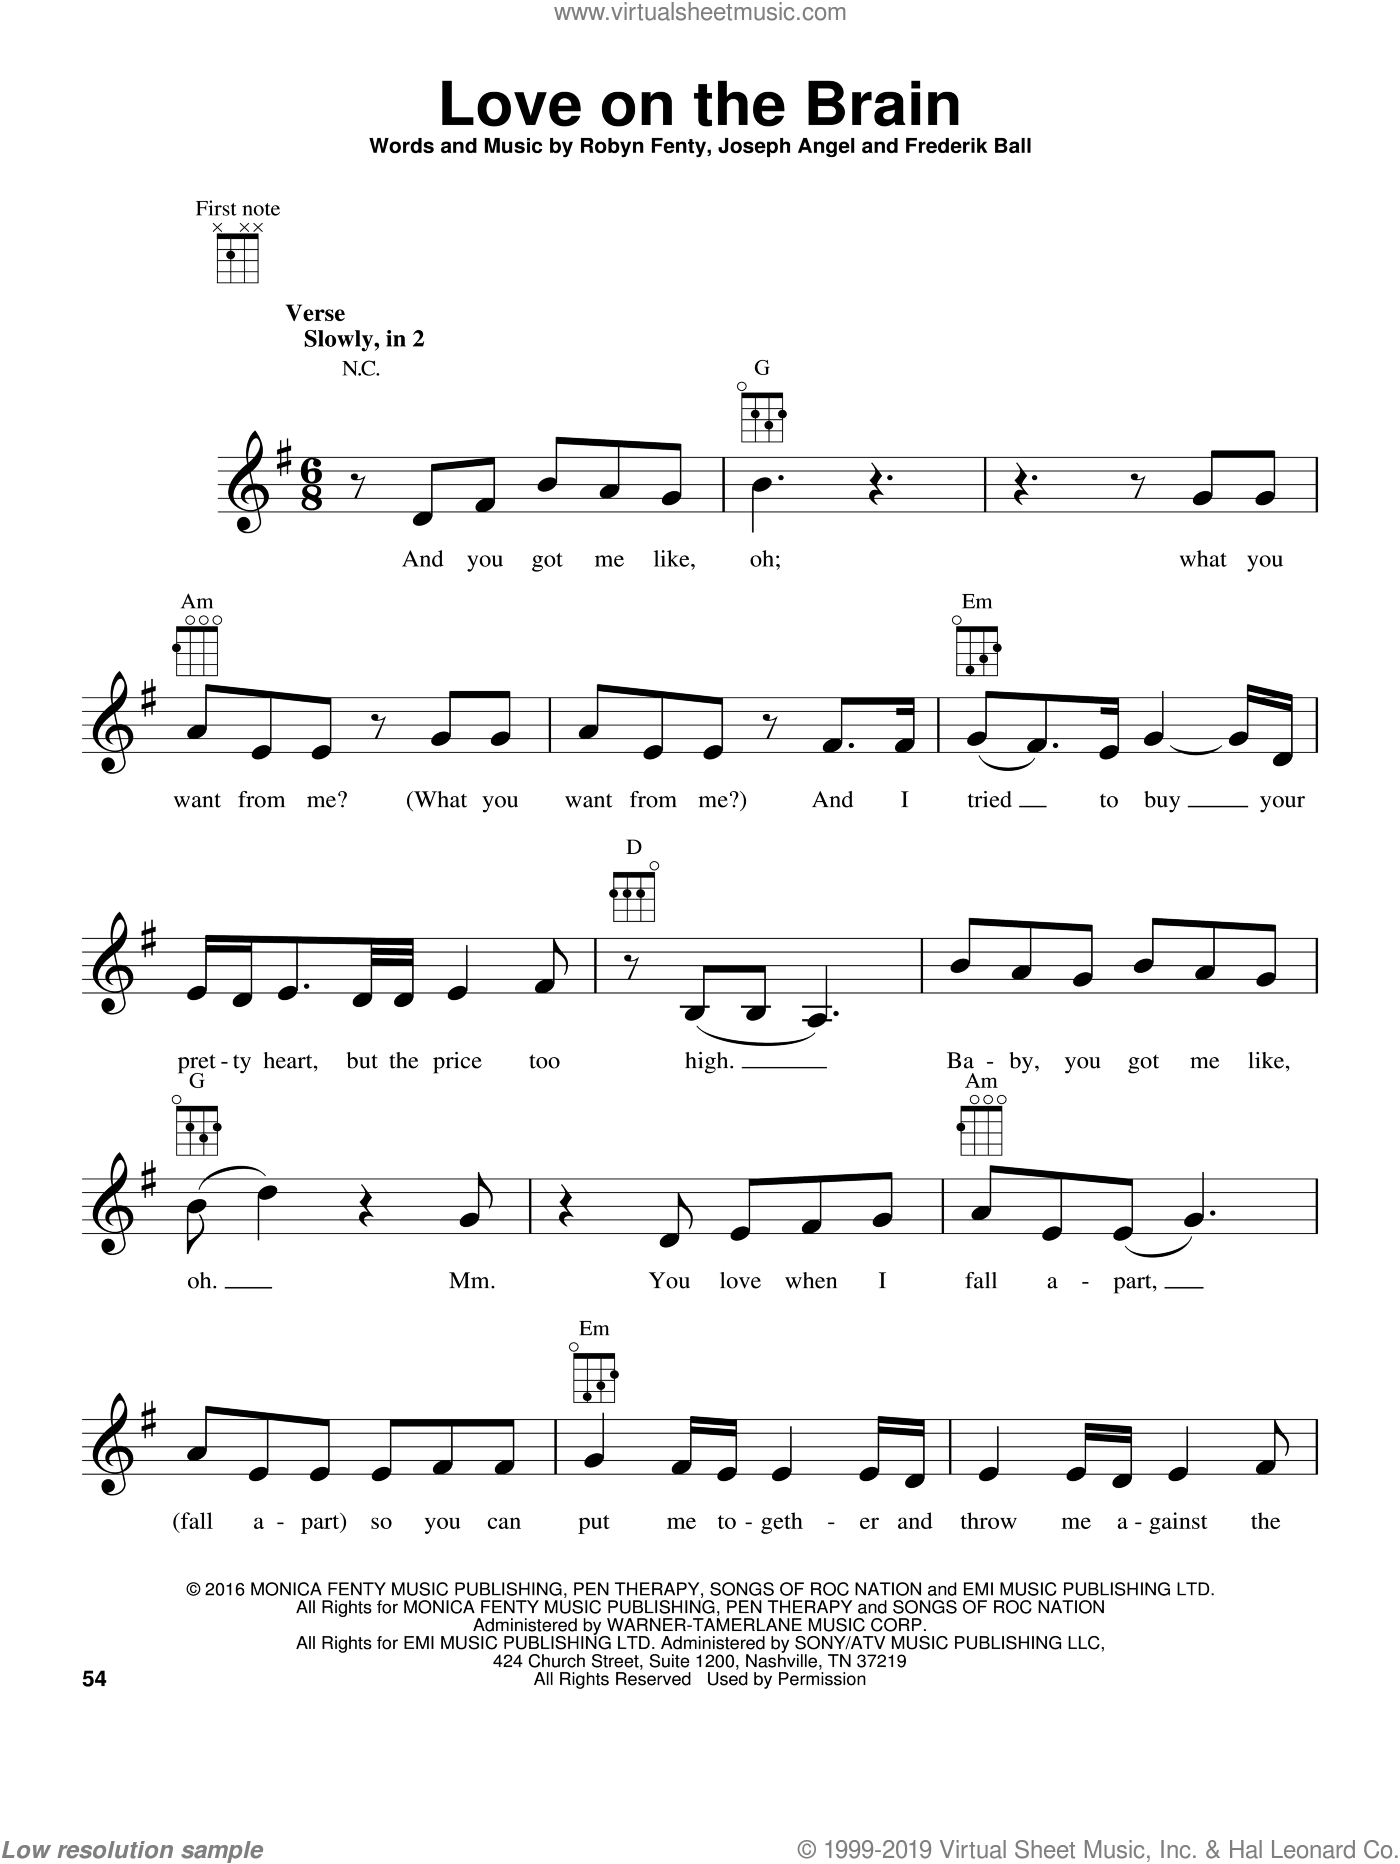 Love On The Brain sheet music for ukulele by Rihanna, Frederik Ball, Joseph Angel and Robyn Fenty, intermediate skill level